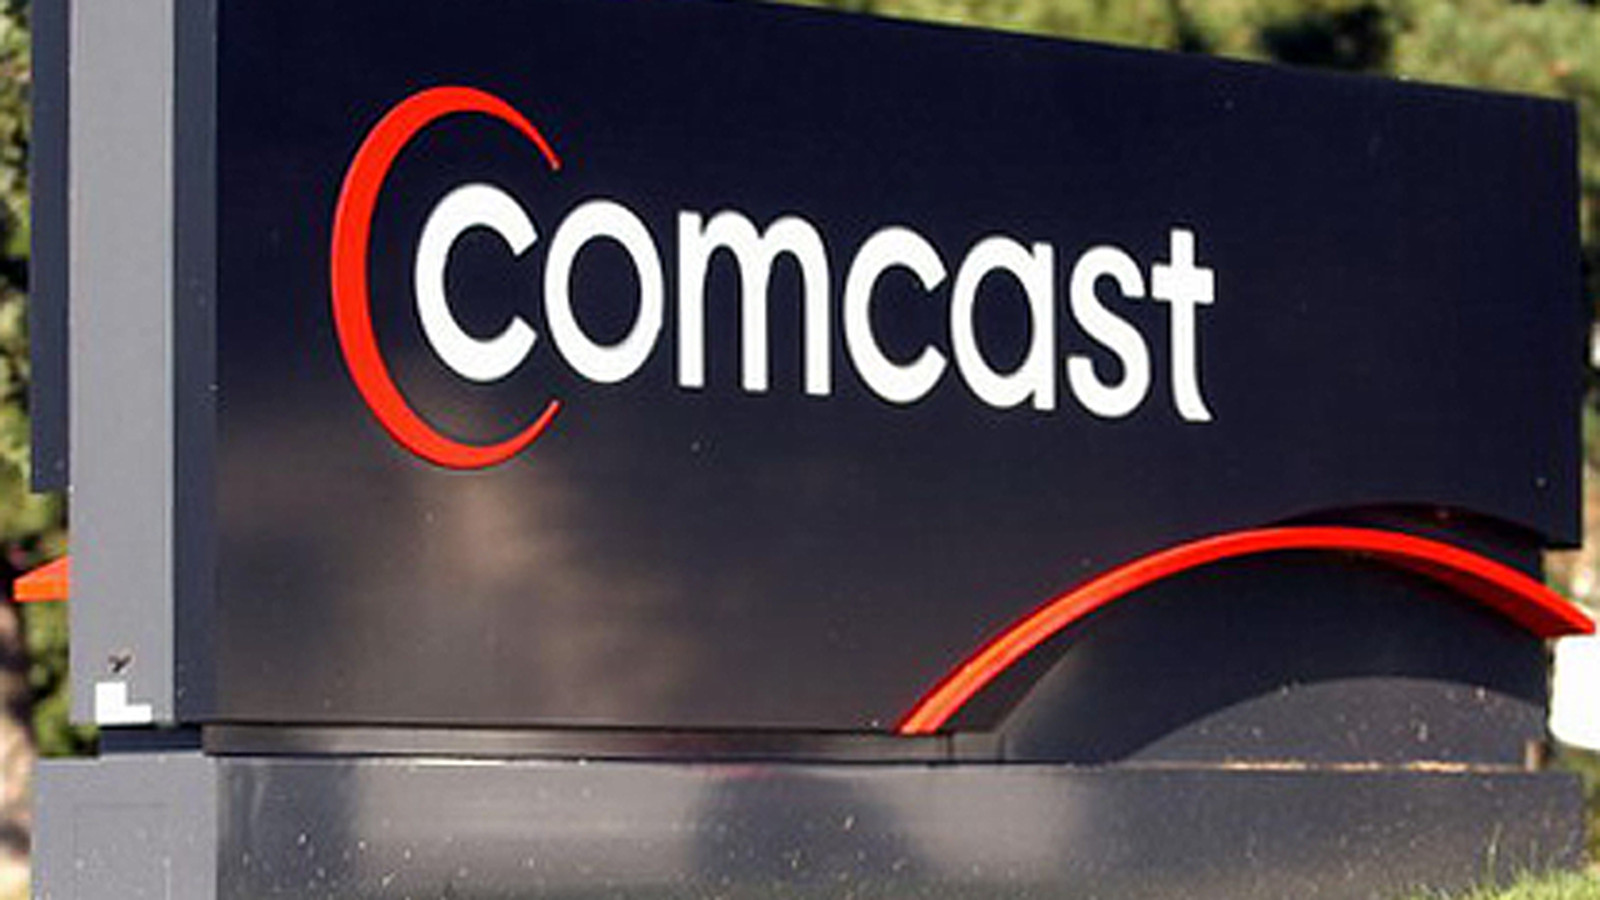 Comcast Rejects Claims Of Xfinity App Favoritism Says It